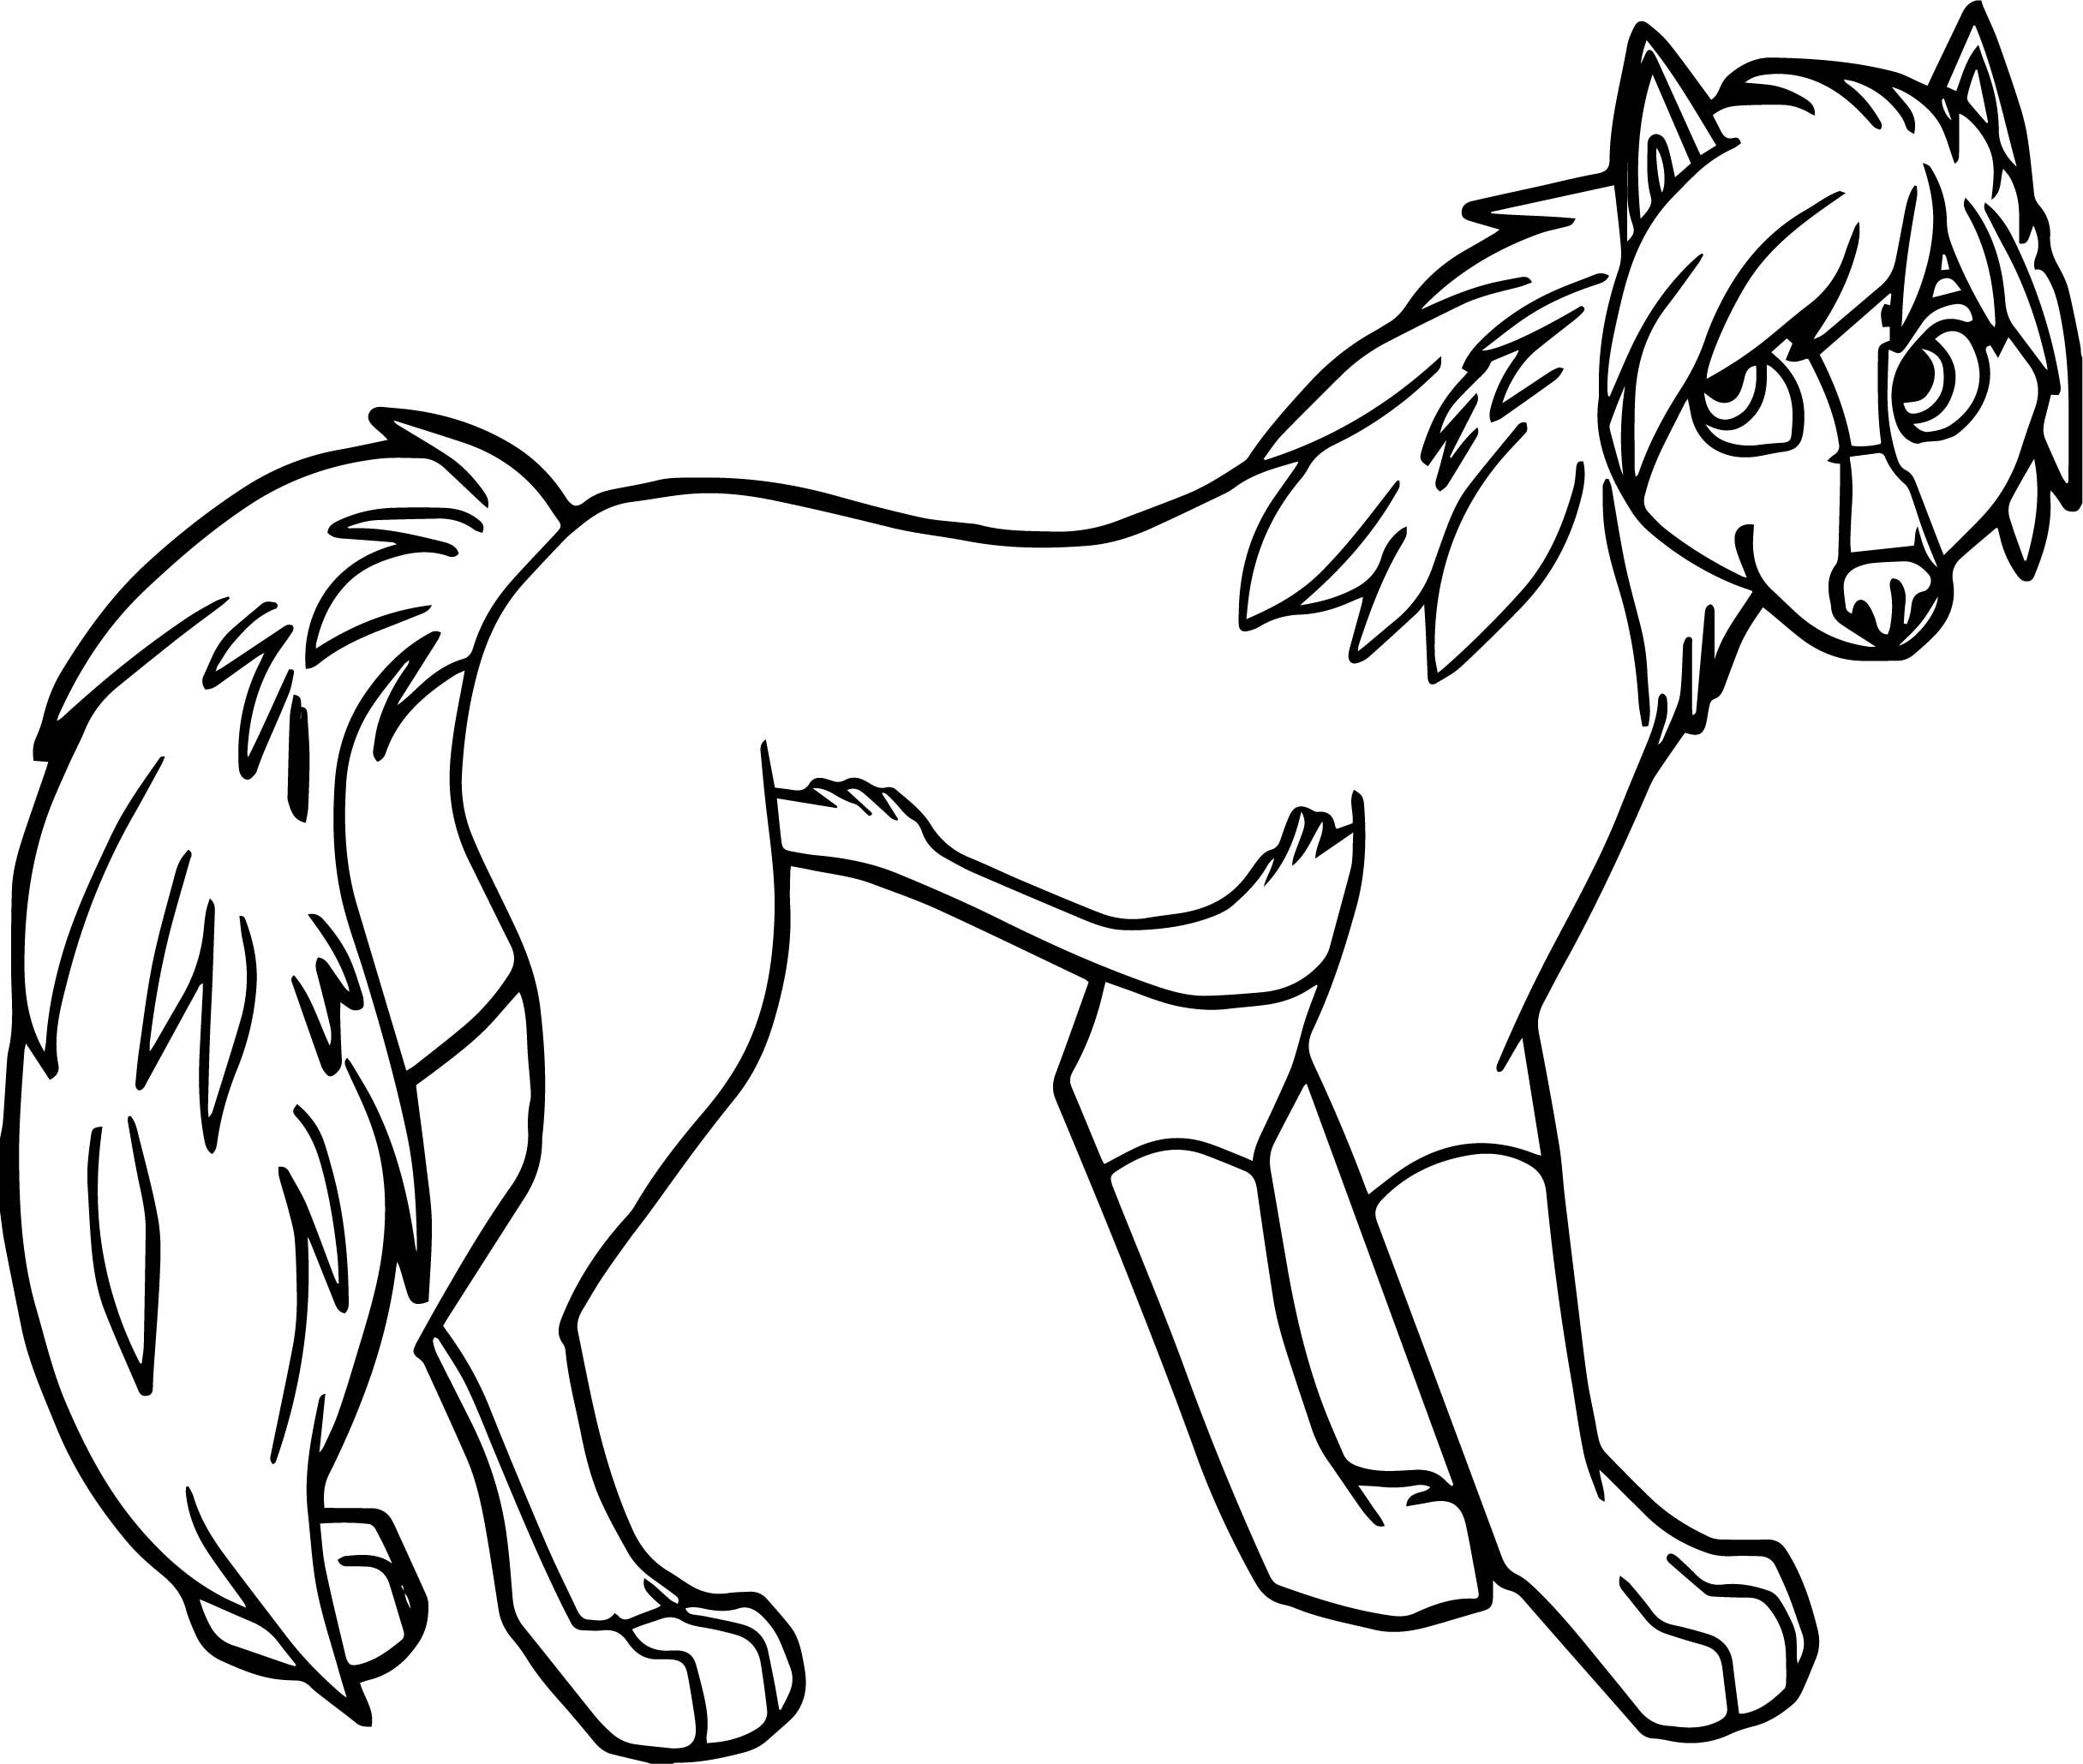 Unique Girl Wolf Coloring Pages Printable Collection to Print Of Wolves Coloring Pages Wolf Coloring Pages Free Coloring Pages Collection